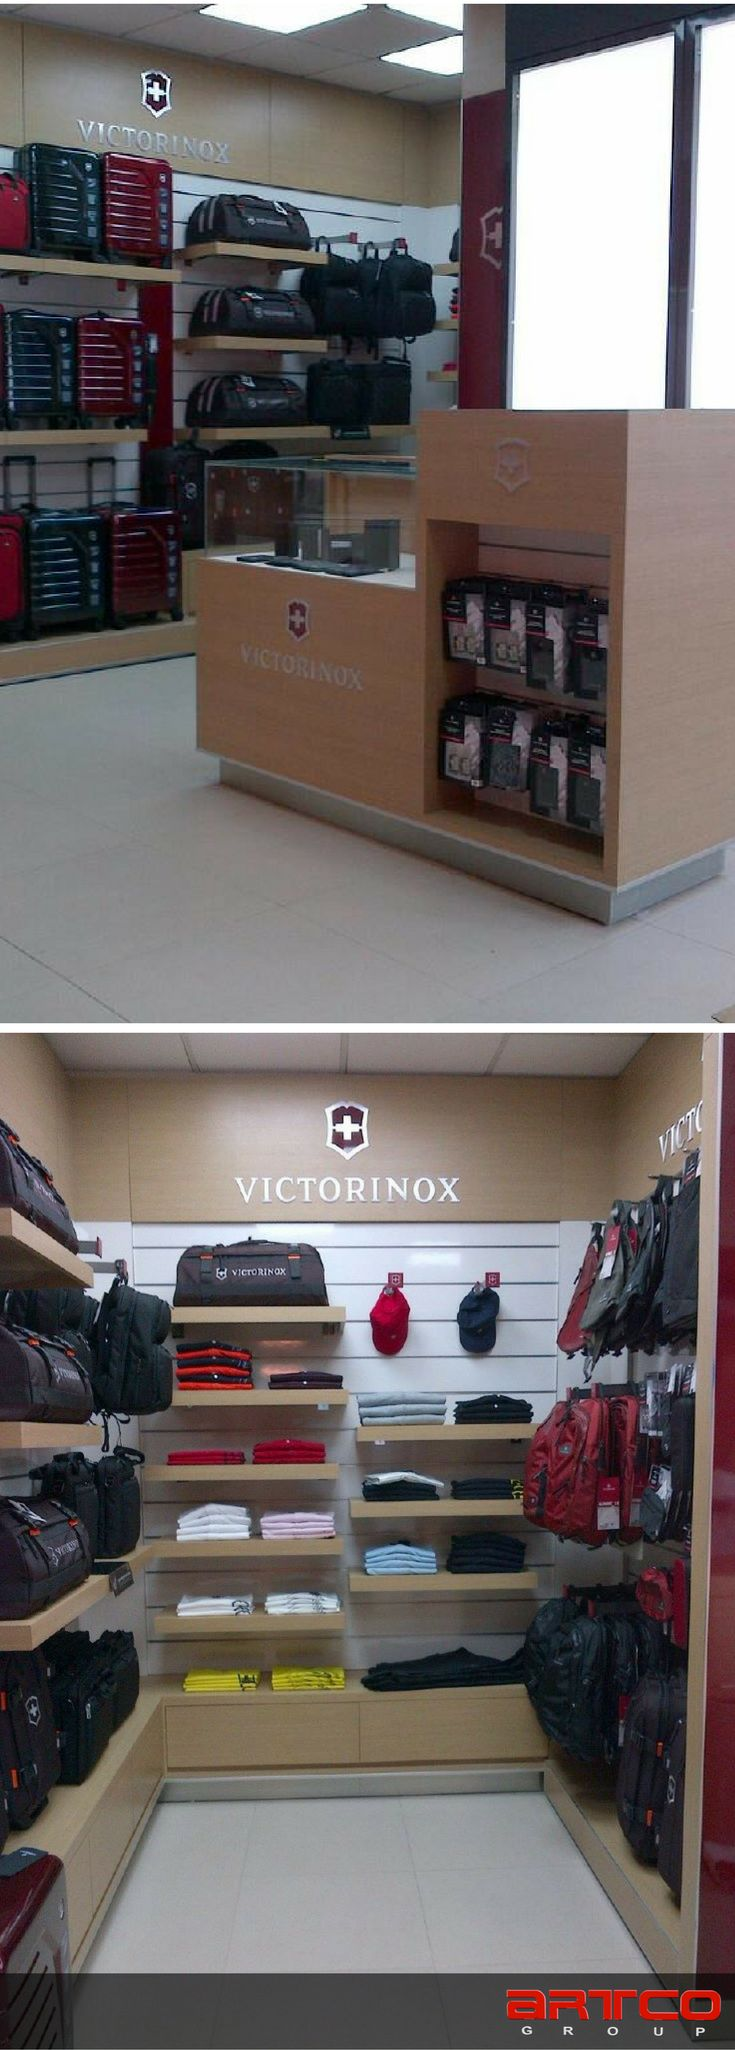 manufacture design of store fixtures by artco group retaildesign storedesign